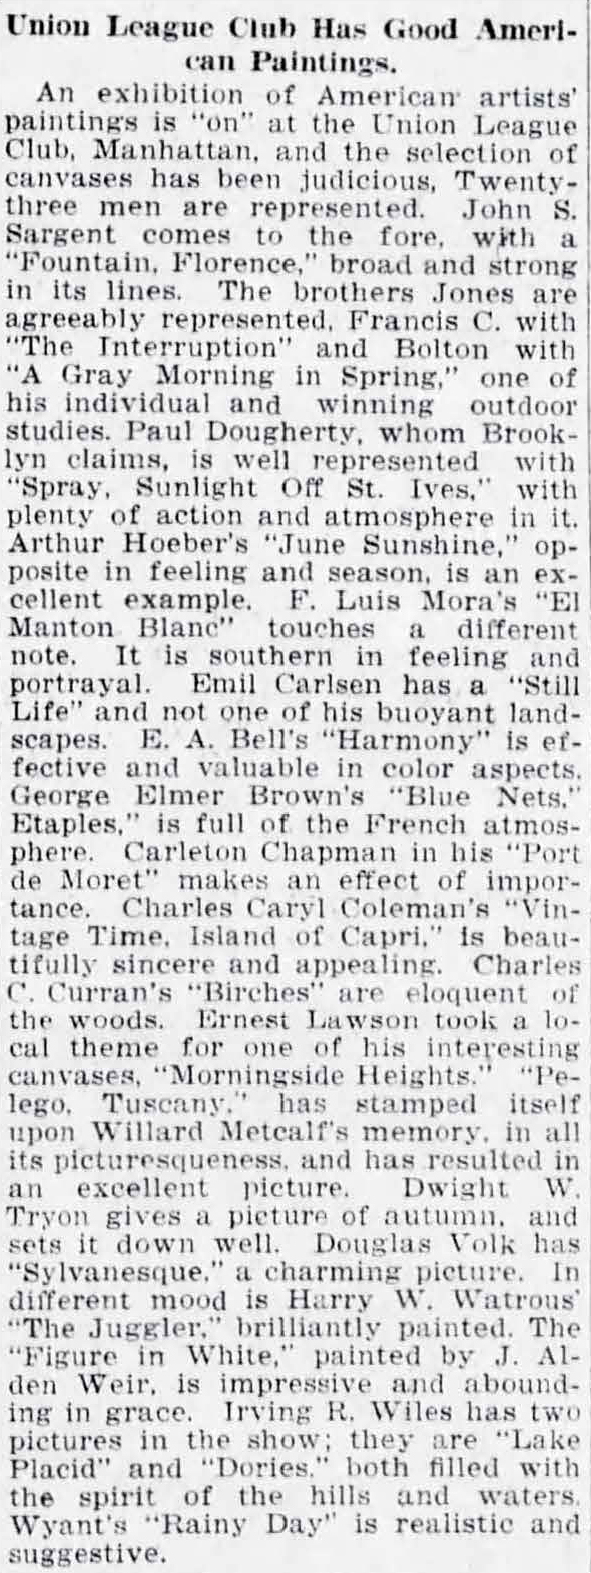 """The Brooklyn Eagle, Brooklyn, NY, """"Union League Club Has Good American Paintings"""", December 11, 1915, Page 9"""